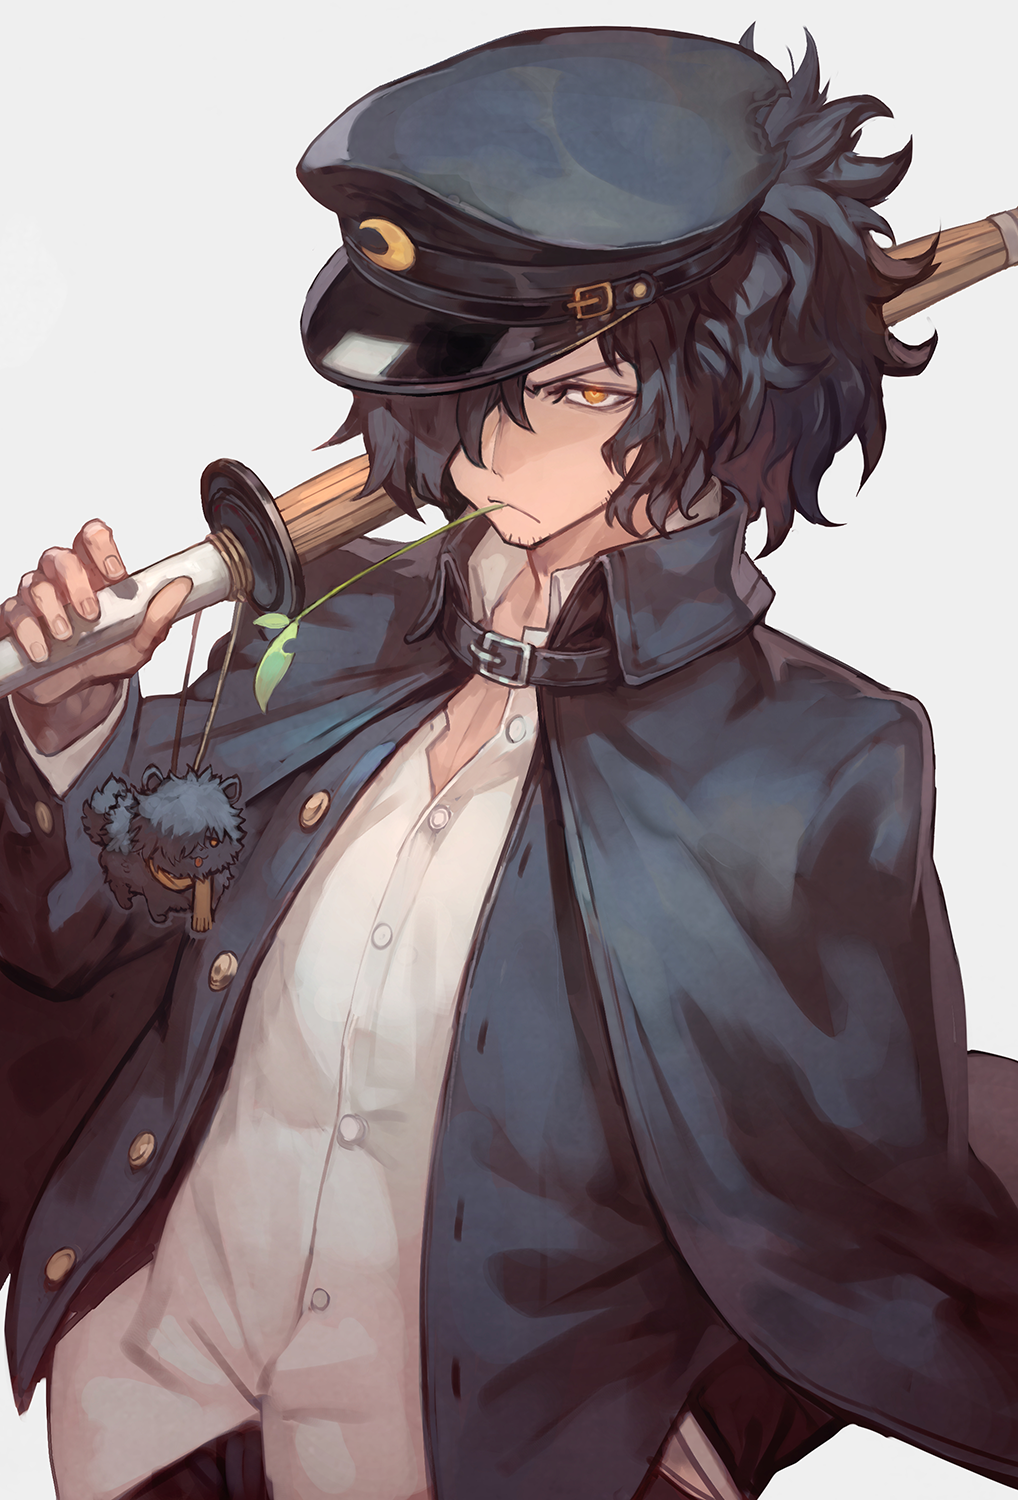 1boy black_cape black_hair black_hat black_jacket bokken buckle cape charm_(object) closed_mouth collar collared_shirt commentary_request crescent_print dog dress_shirt facial_hair fate/grand_order fate_(series) fingernails gakuran grey_background hair_over_one_eye hand_in_pocket hat highres holding holding_sword holding_weapon jacket lack long_sleeves looking_at_viewer male_focus okada_izou_(dog) okada_izou_(fate) open_clothes open_jacket orange_eyes scarf school_uniform shirt solo stubble sword unbuttoned upper_body weapon white_shirt wing_collar wooden_sword